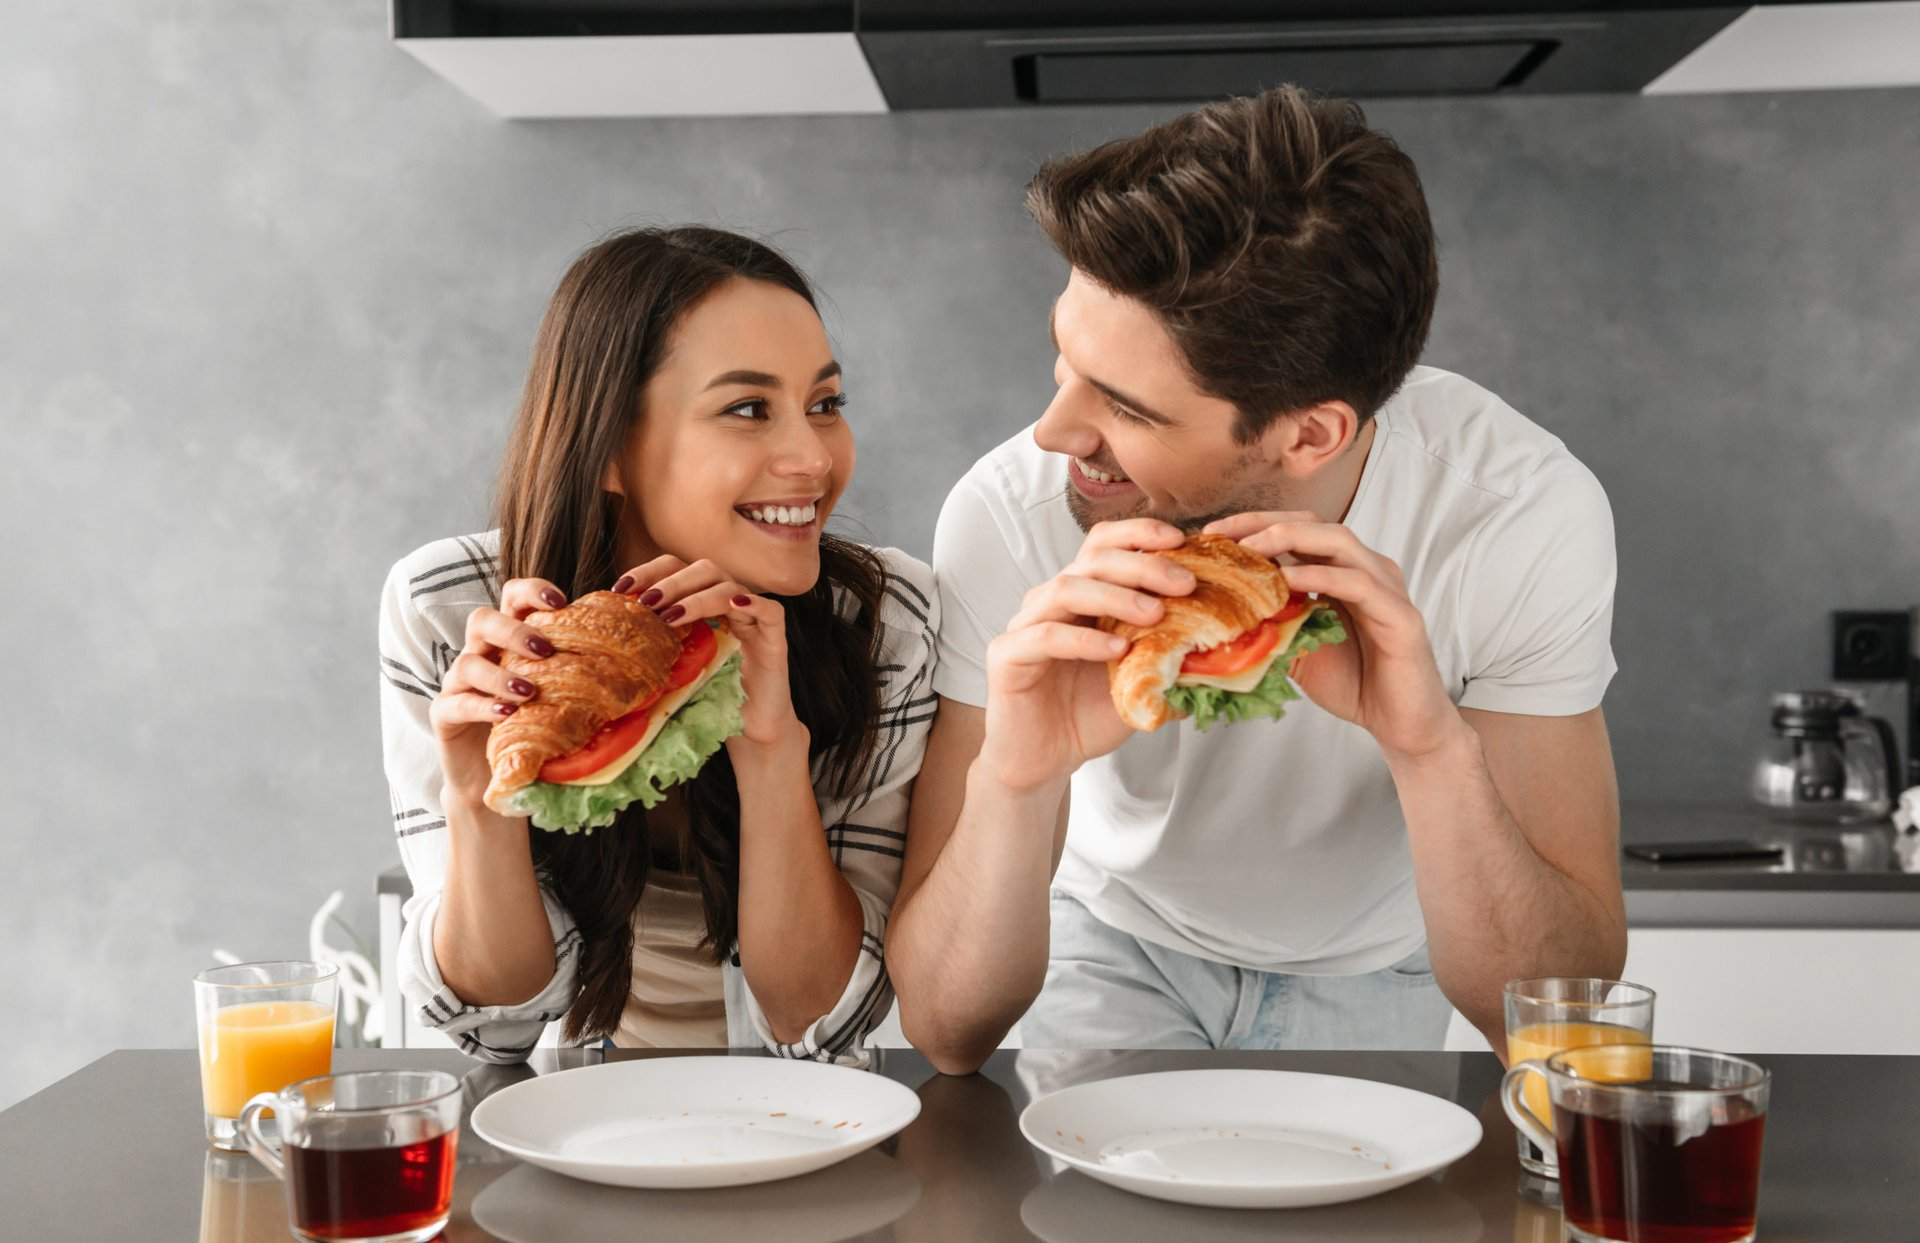 Couple eating sandwiches at home